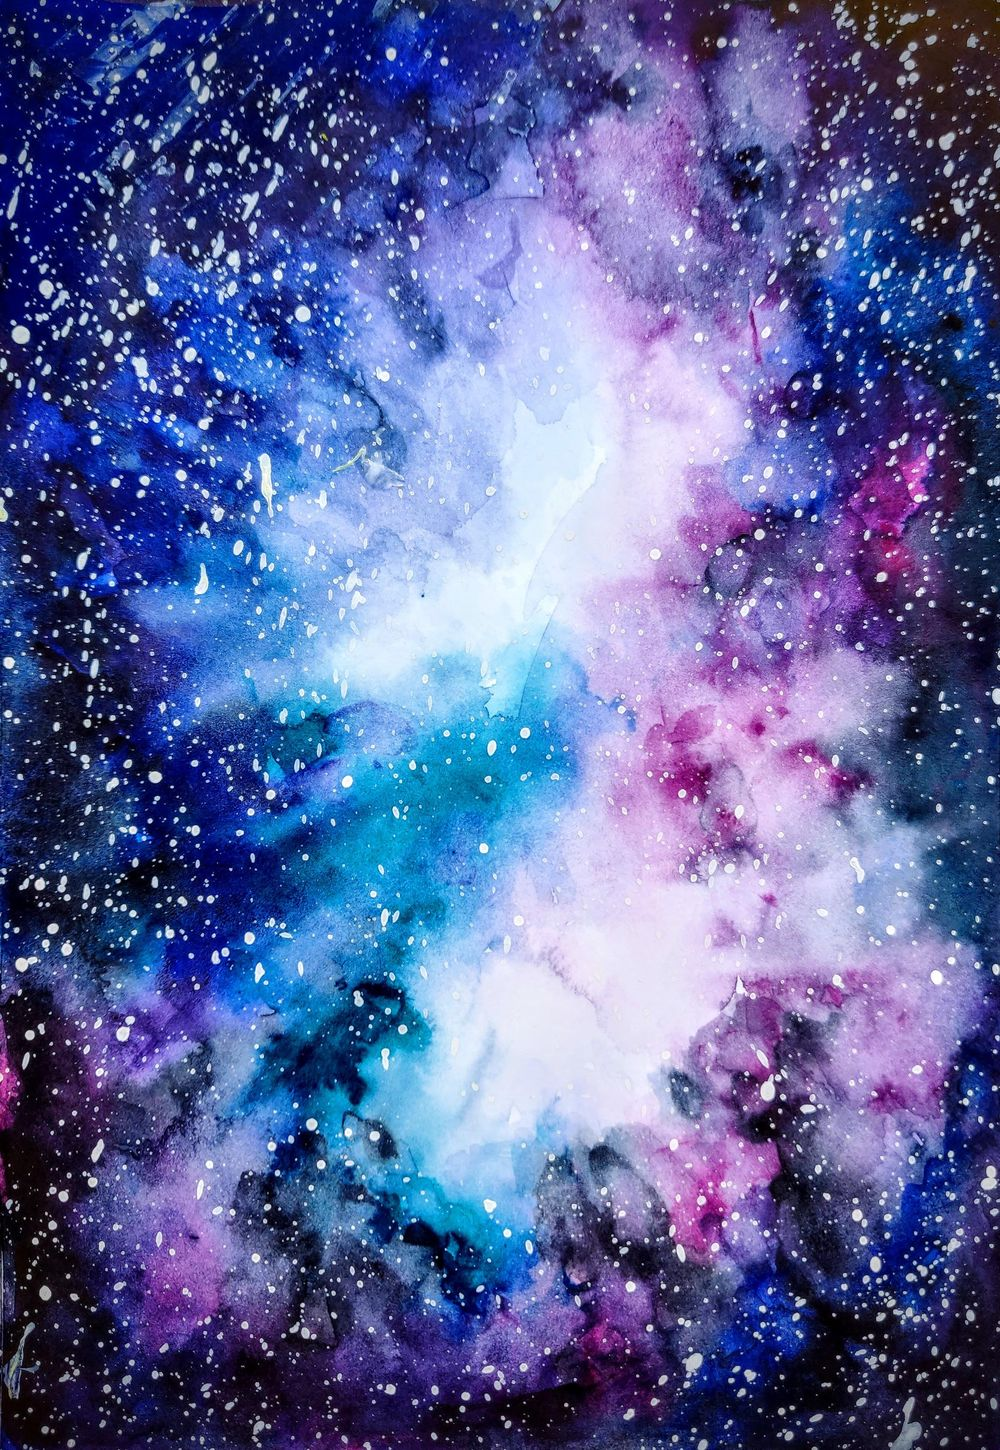 Galaxy - image 4 - student project